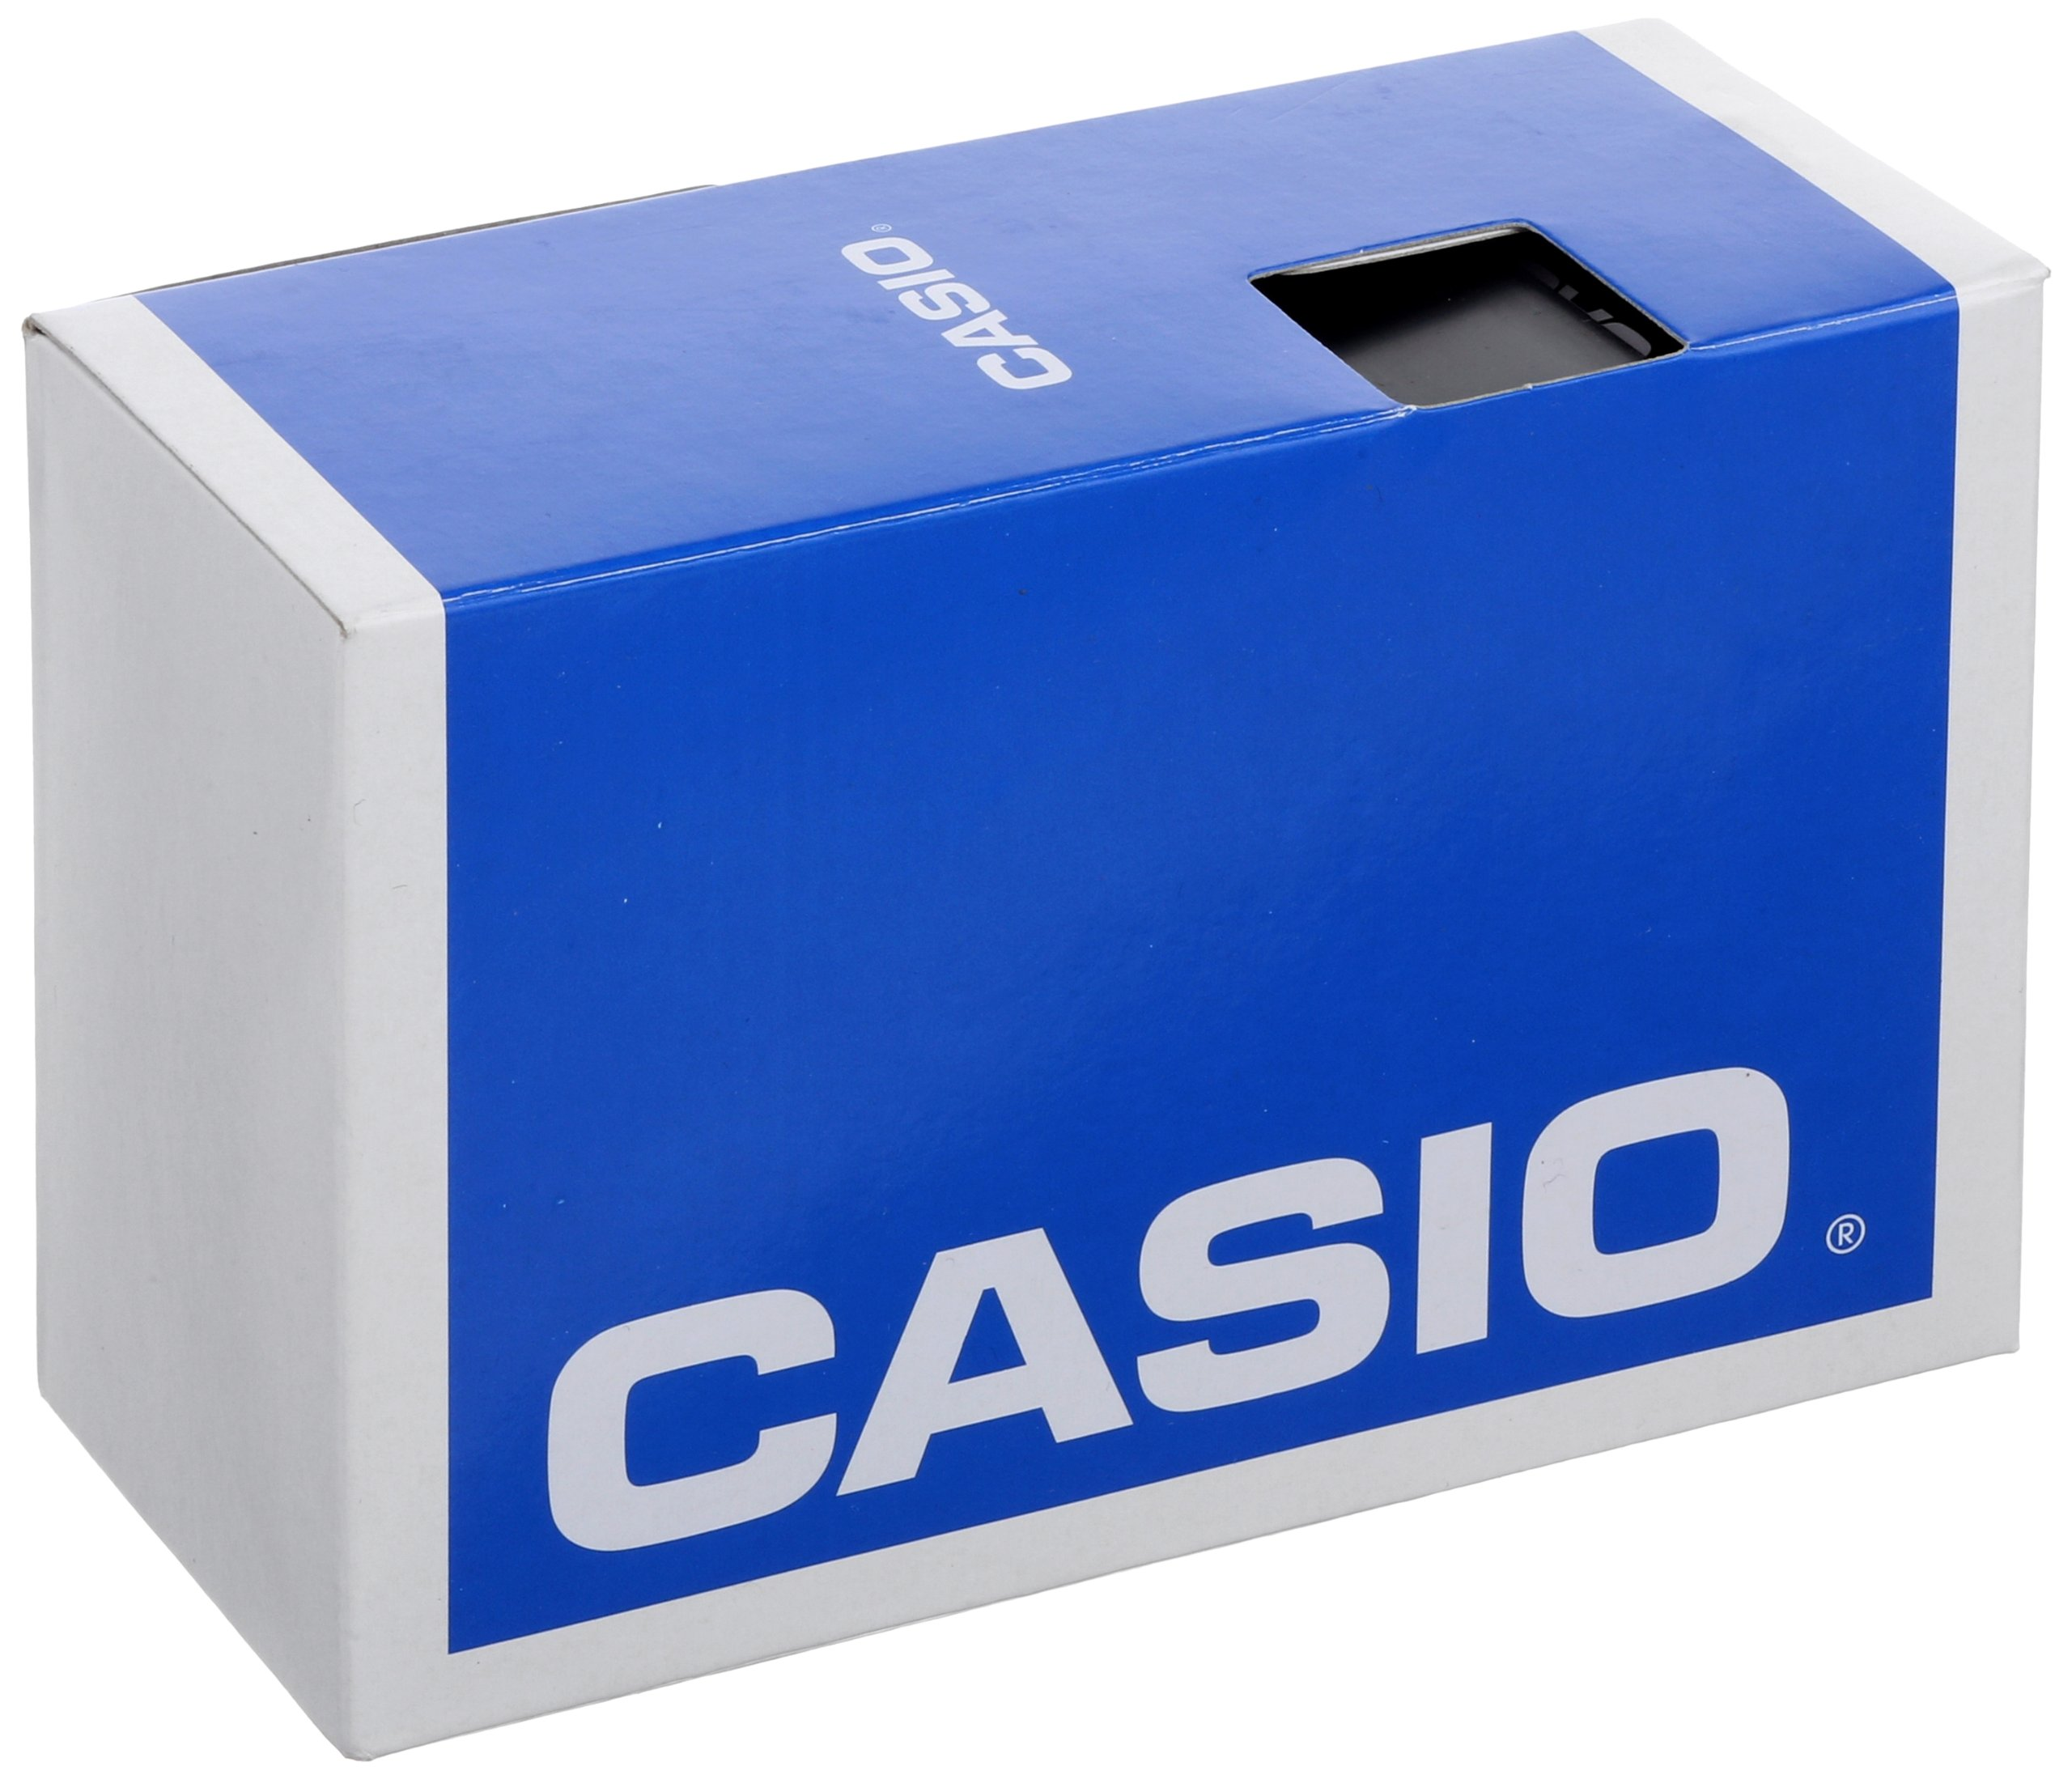 Casio Unisex F-108WHC-7ACF Classic White Resin Band Watch by Casio (Image #3)